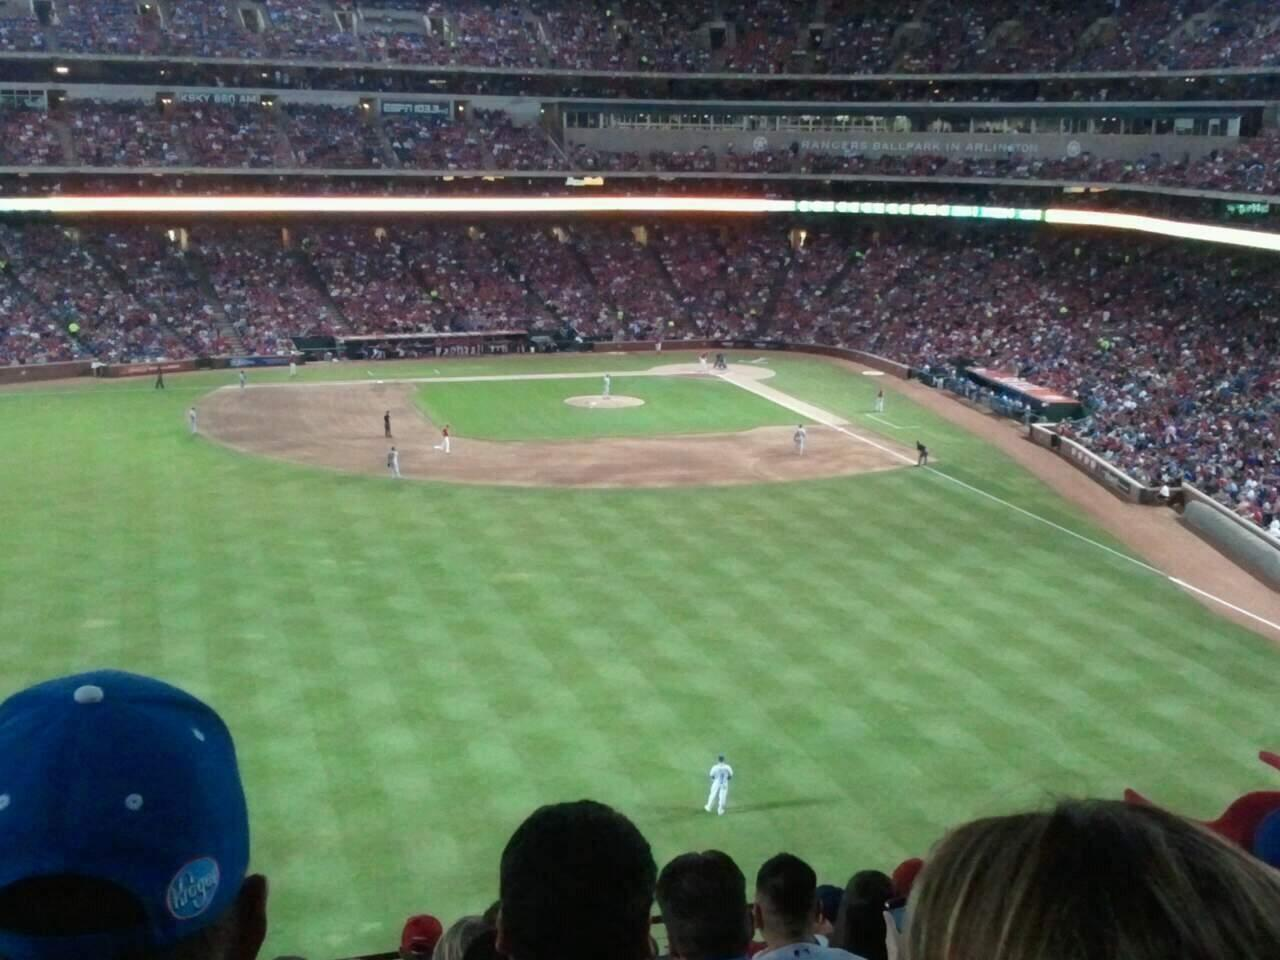 Globe Life Park in Arlington Section 202 Row 9 Seat 11